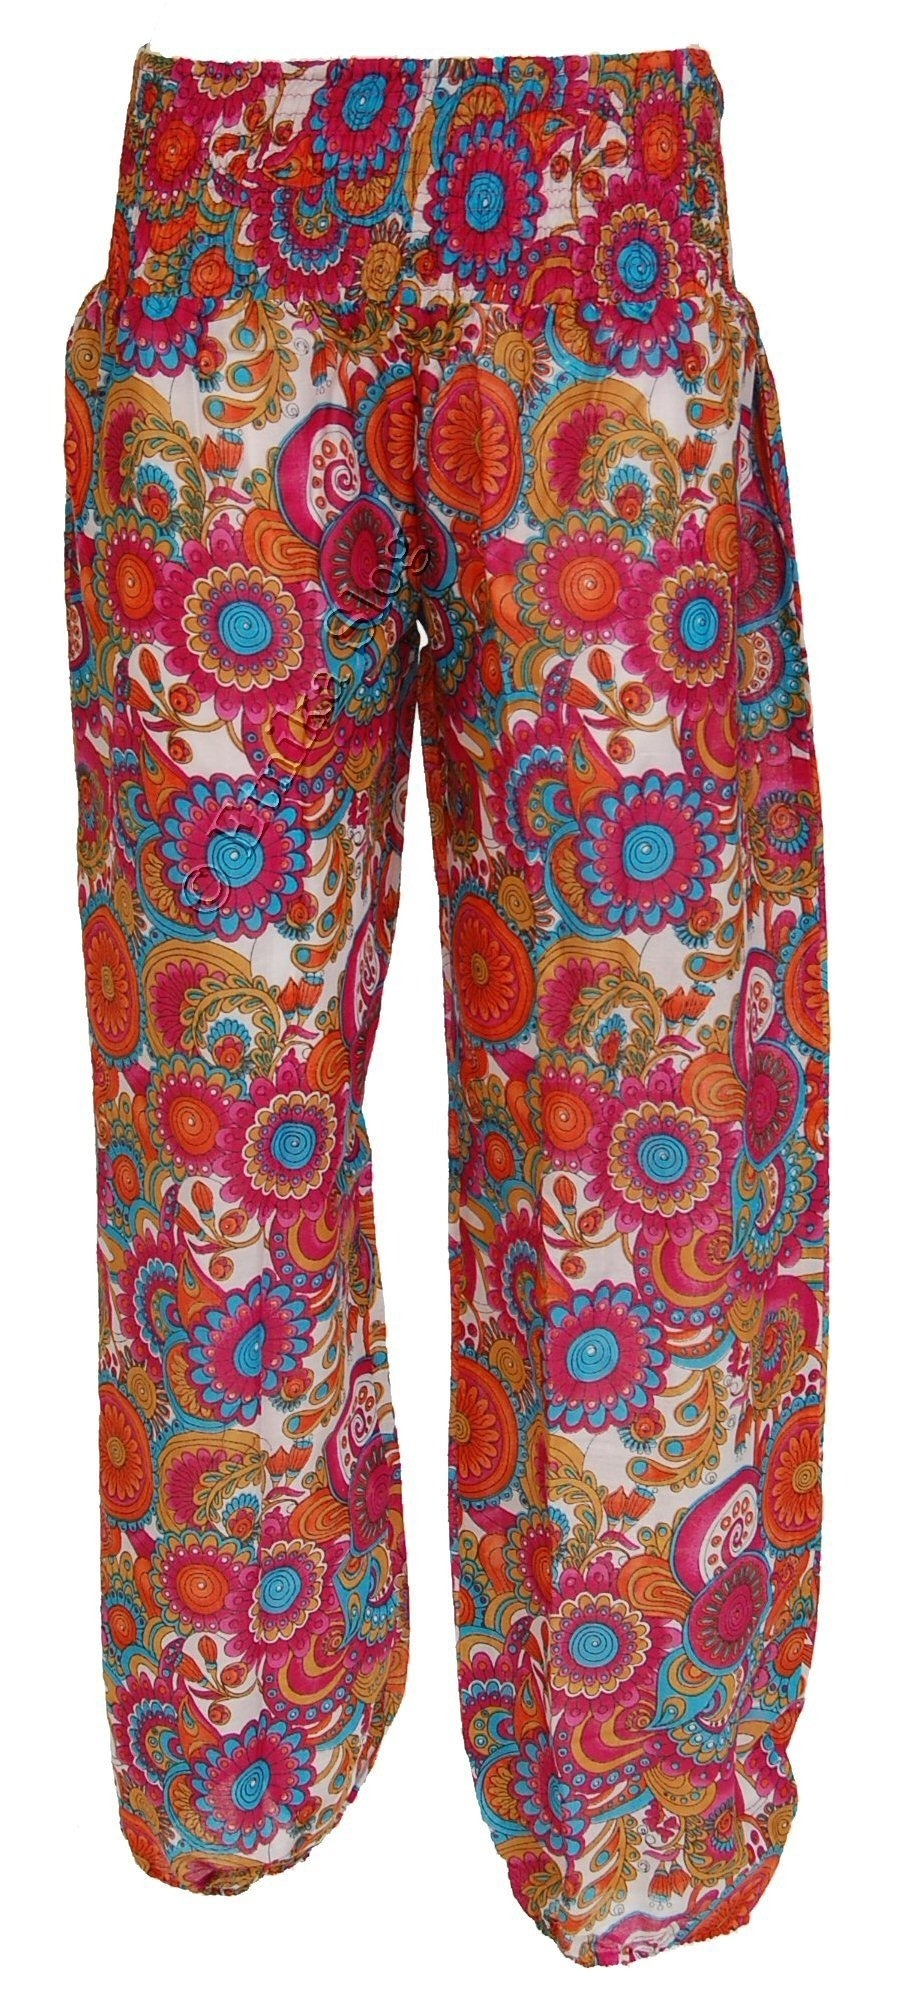 SUMMER COTTON TROUSERS AB-DSP03 - Oriente Import S.r.l.